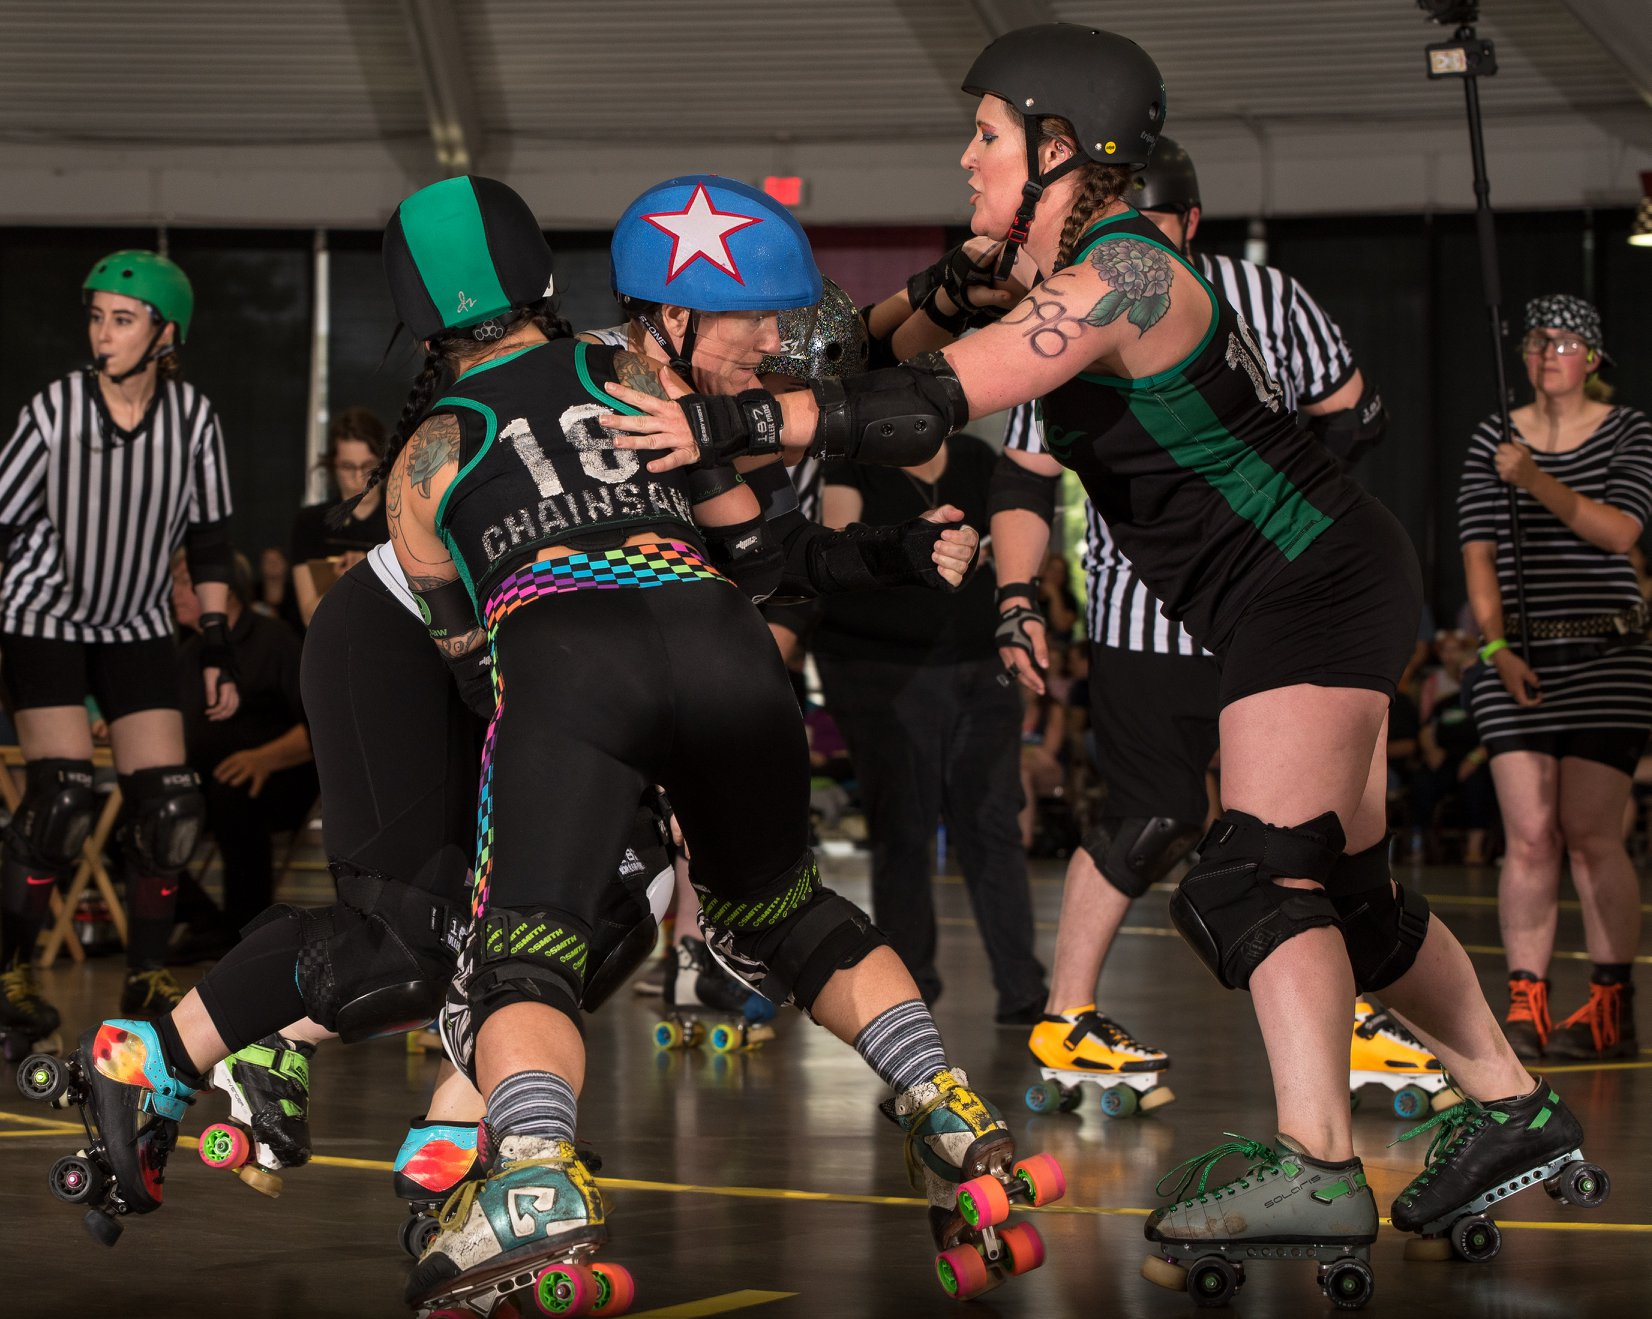 Chainsaw Amy blocking OHRD v Brandywine 6.8.19 Chris Baker